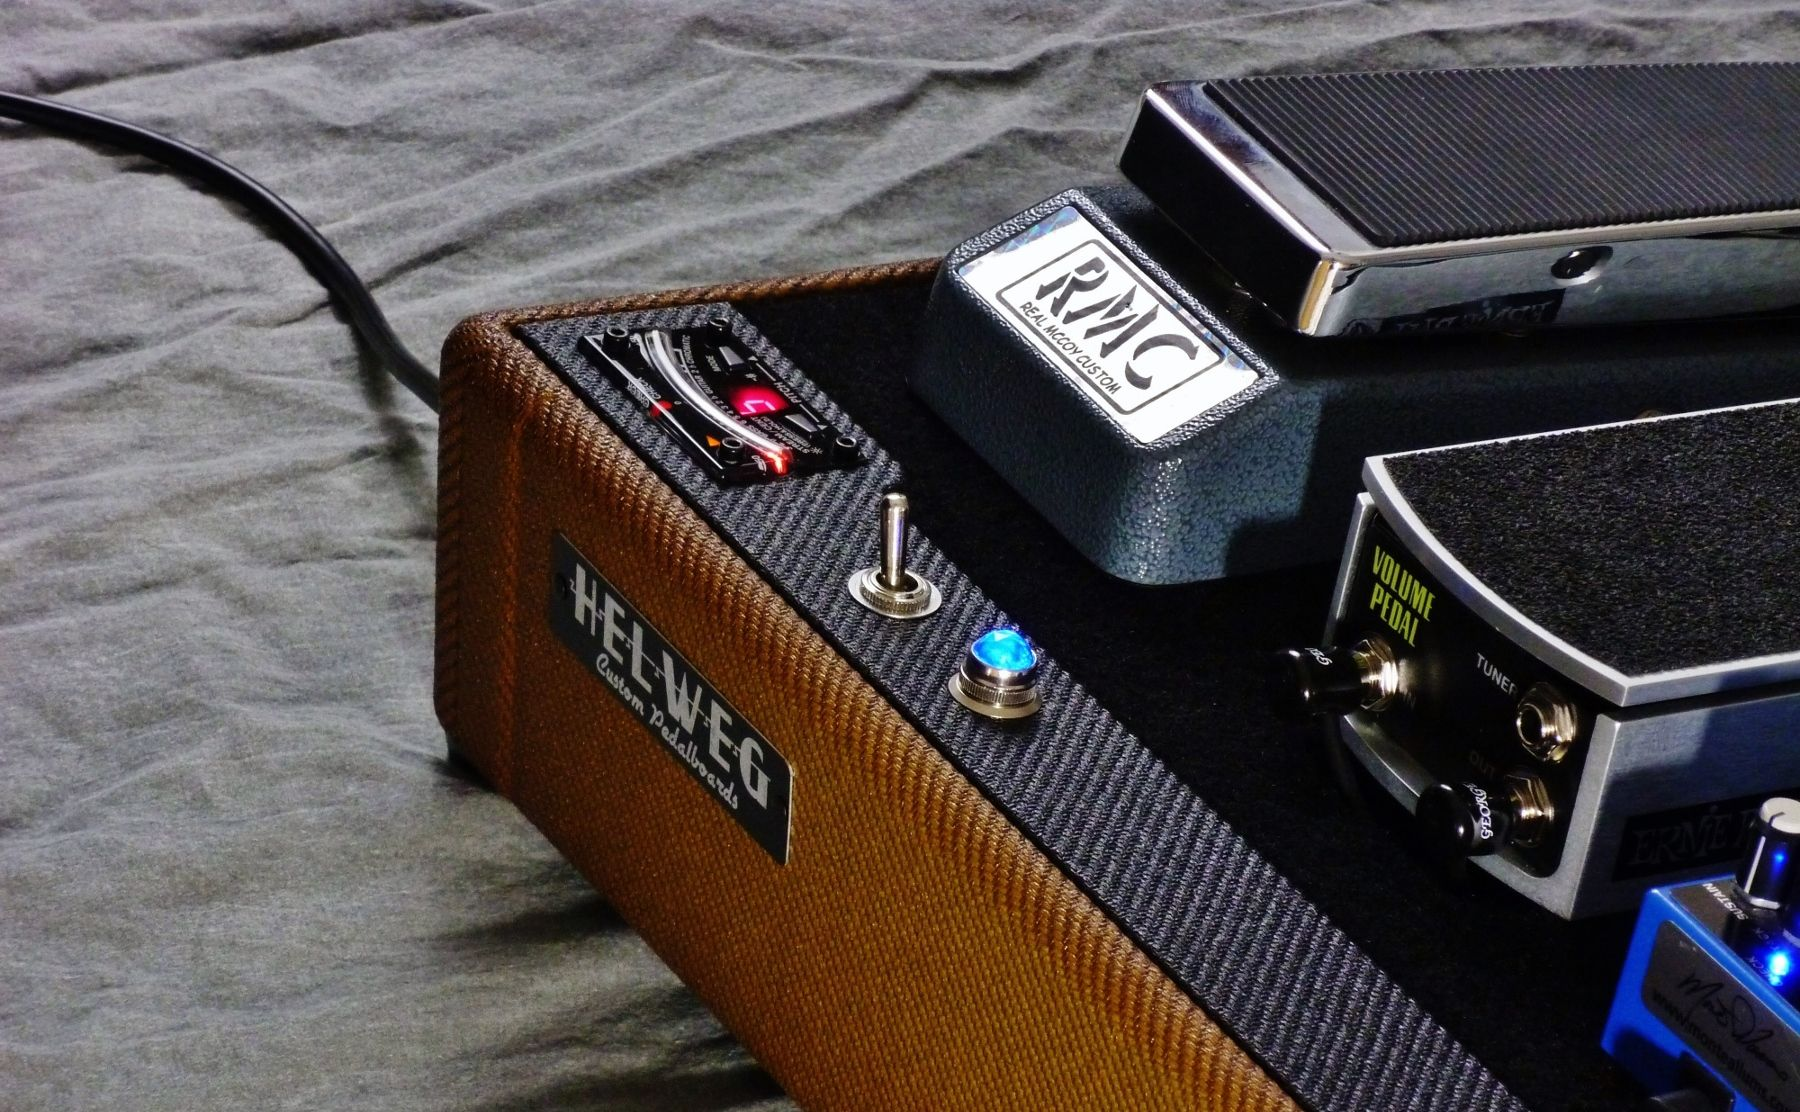 pin by nathan morgan on products i love in 2019 guitar pedals diy pedalboard diy guitar pedal. Black Bedroom Furniture Sets. Home Design Ideas